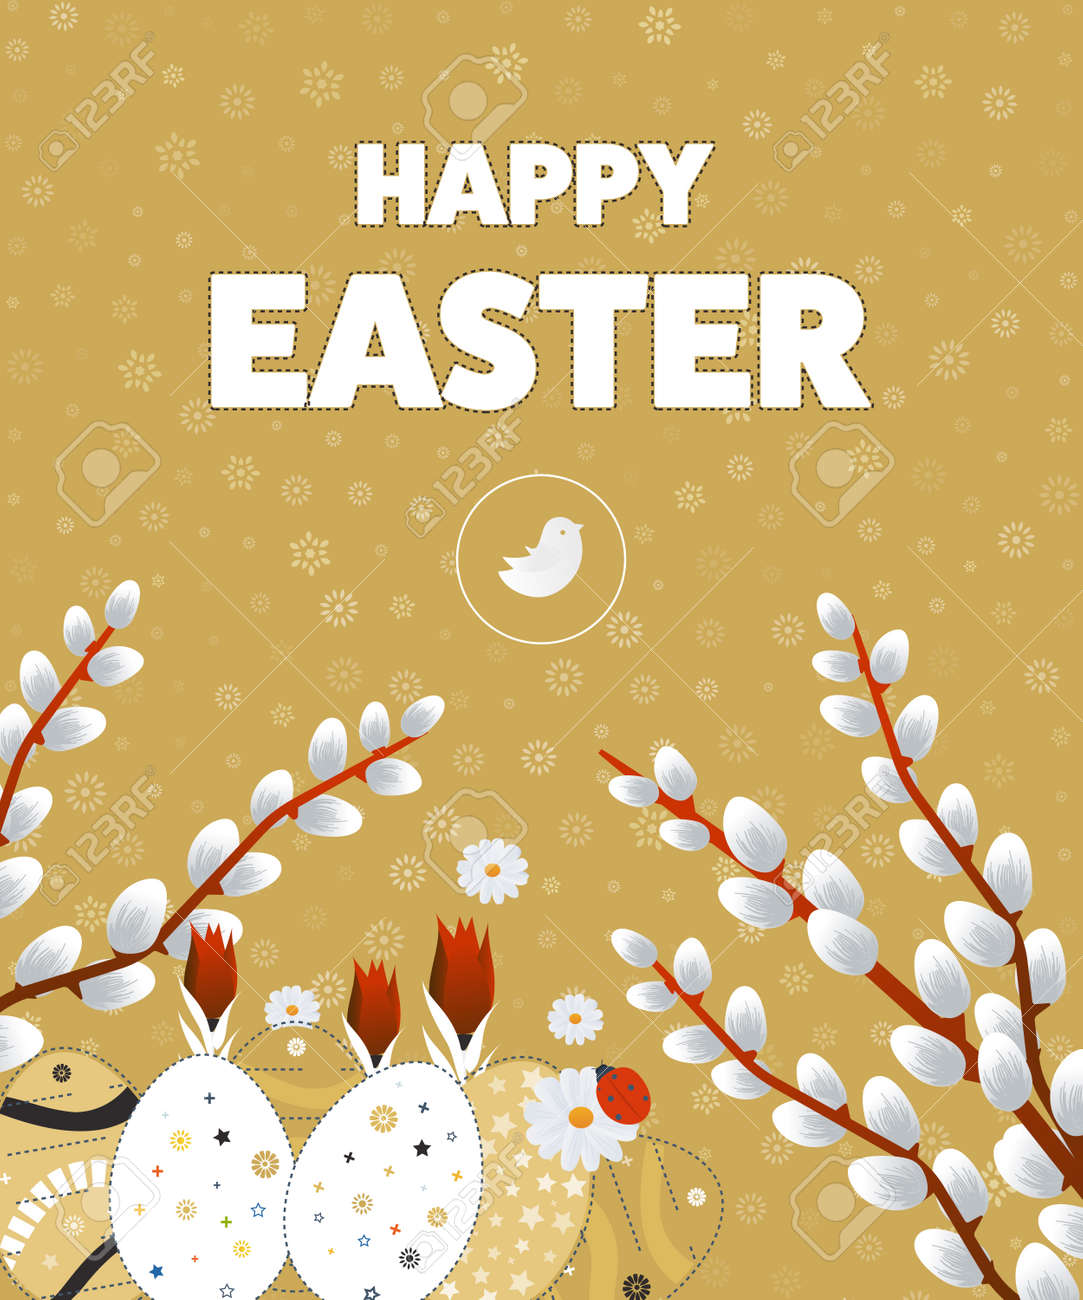 Happy Easter Card With Eggs Easter Invitation Easter Egg Design